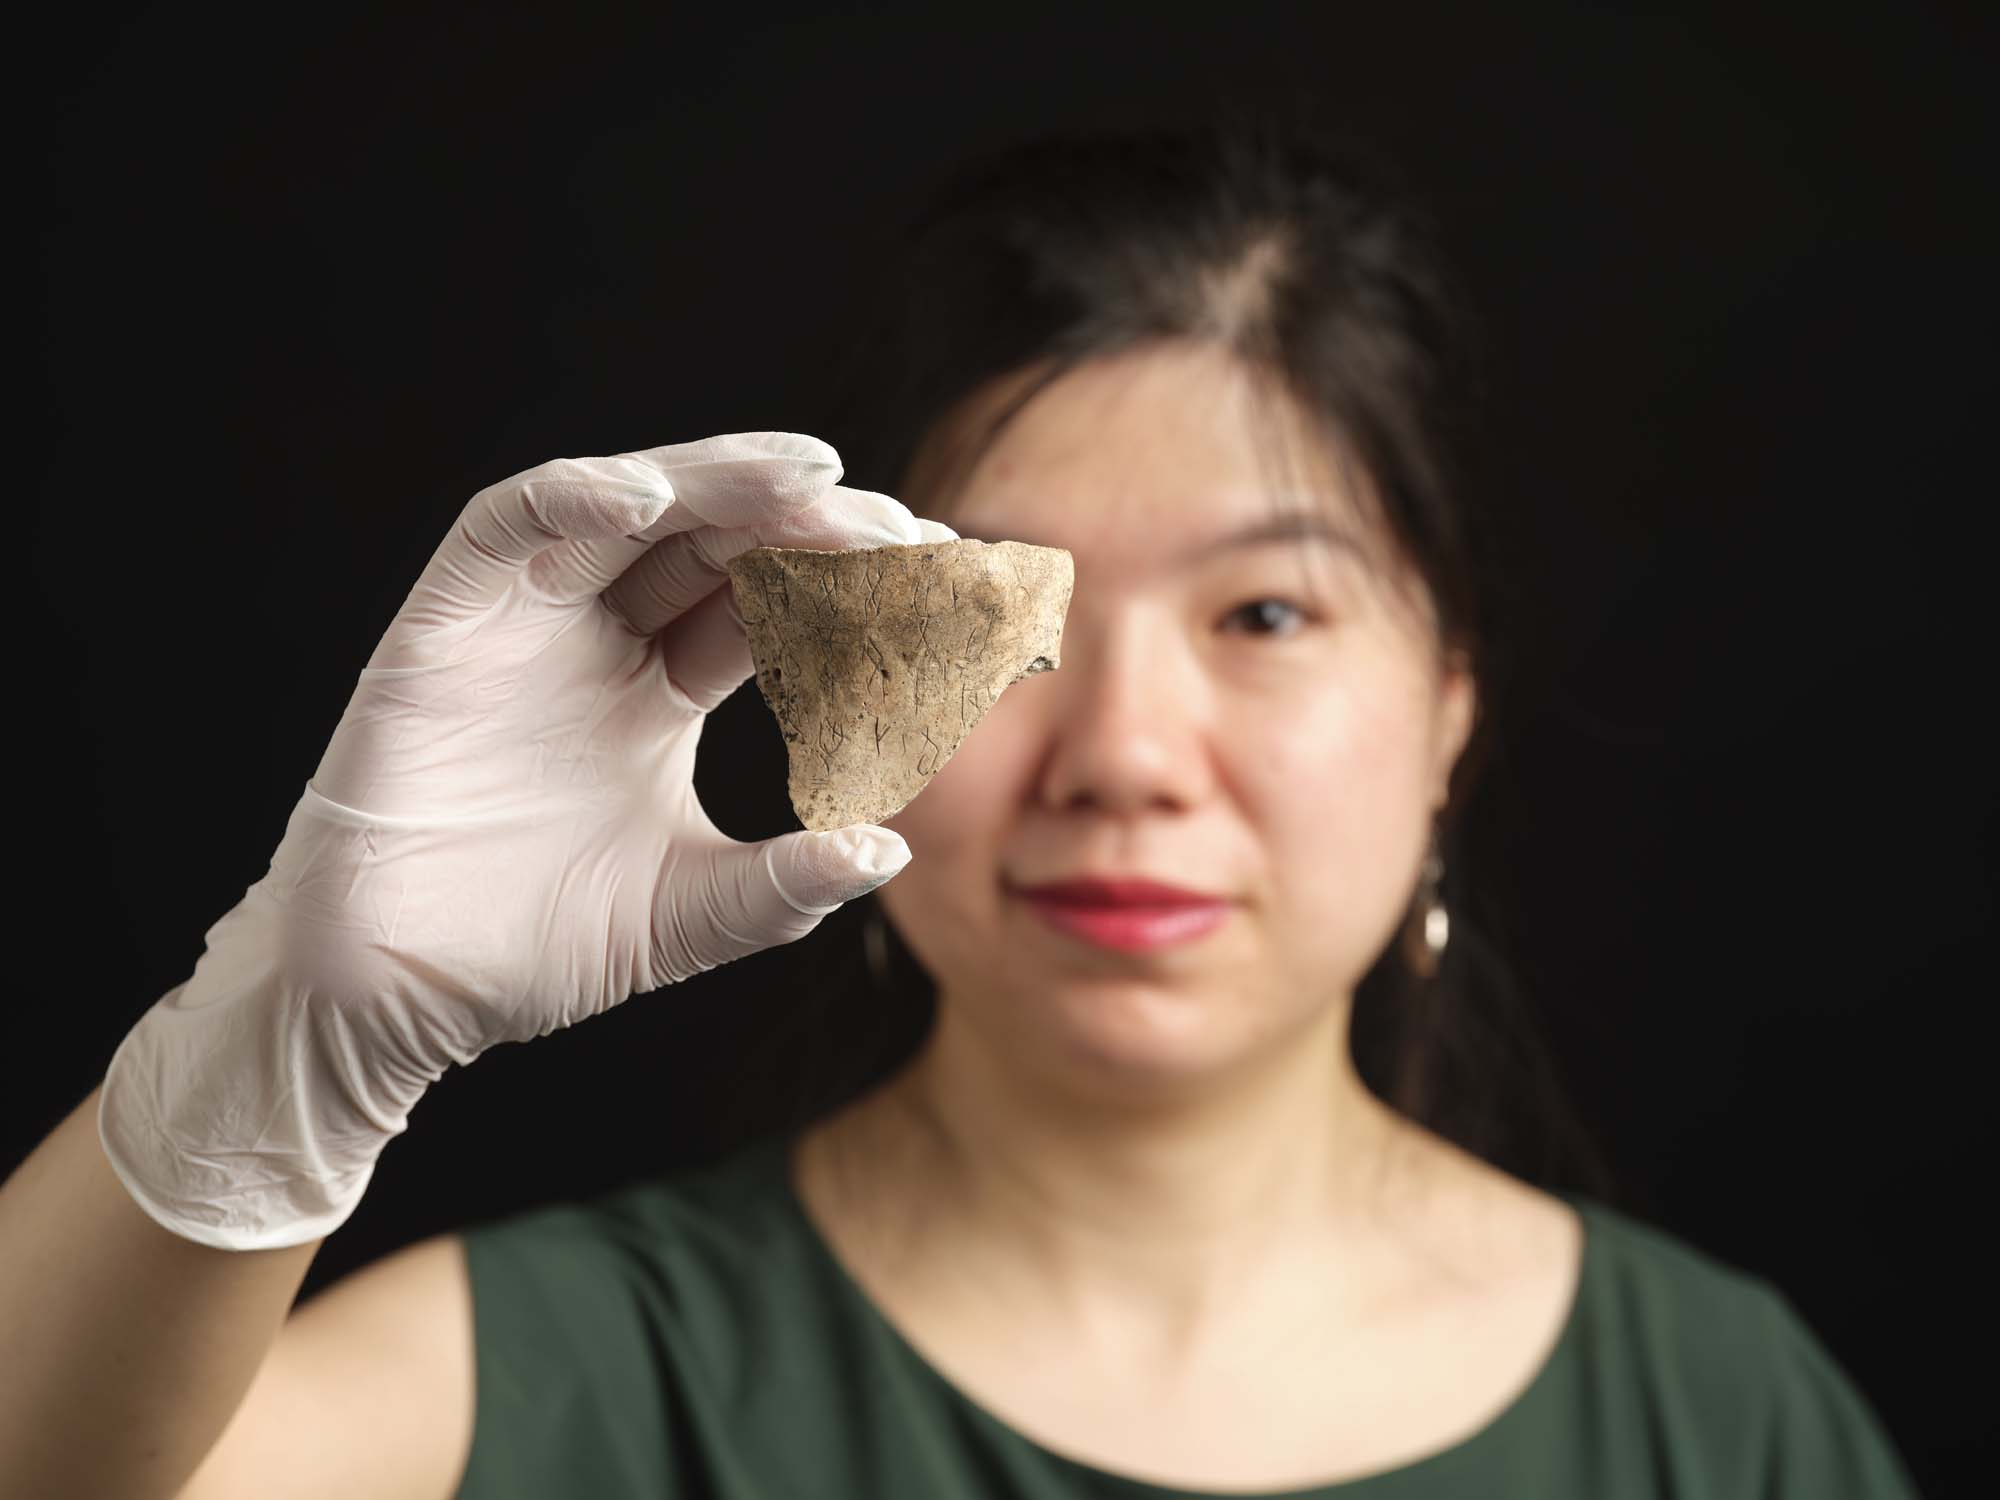 a photo of woman holding a scrap of bone in a gloved hand